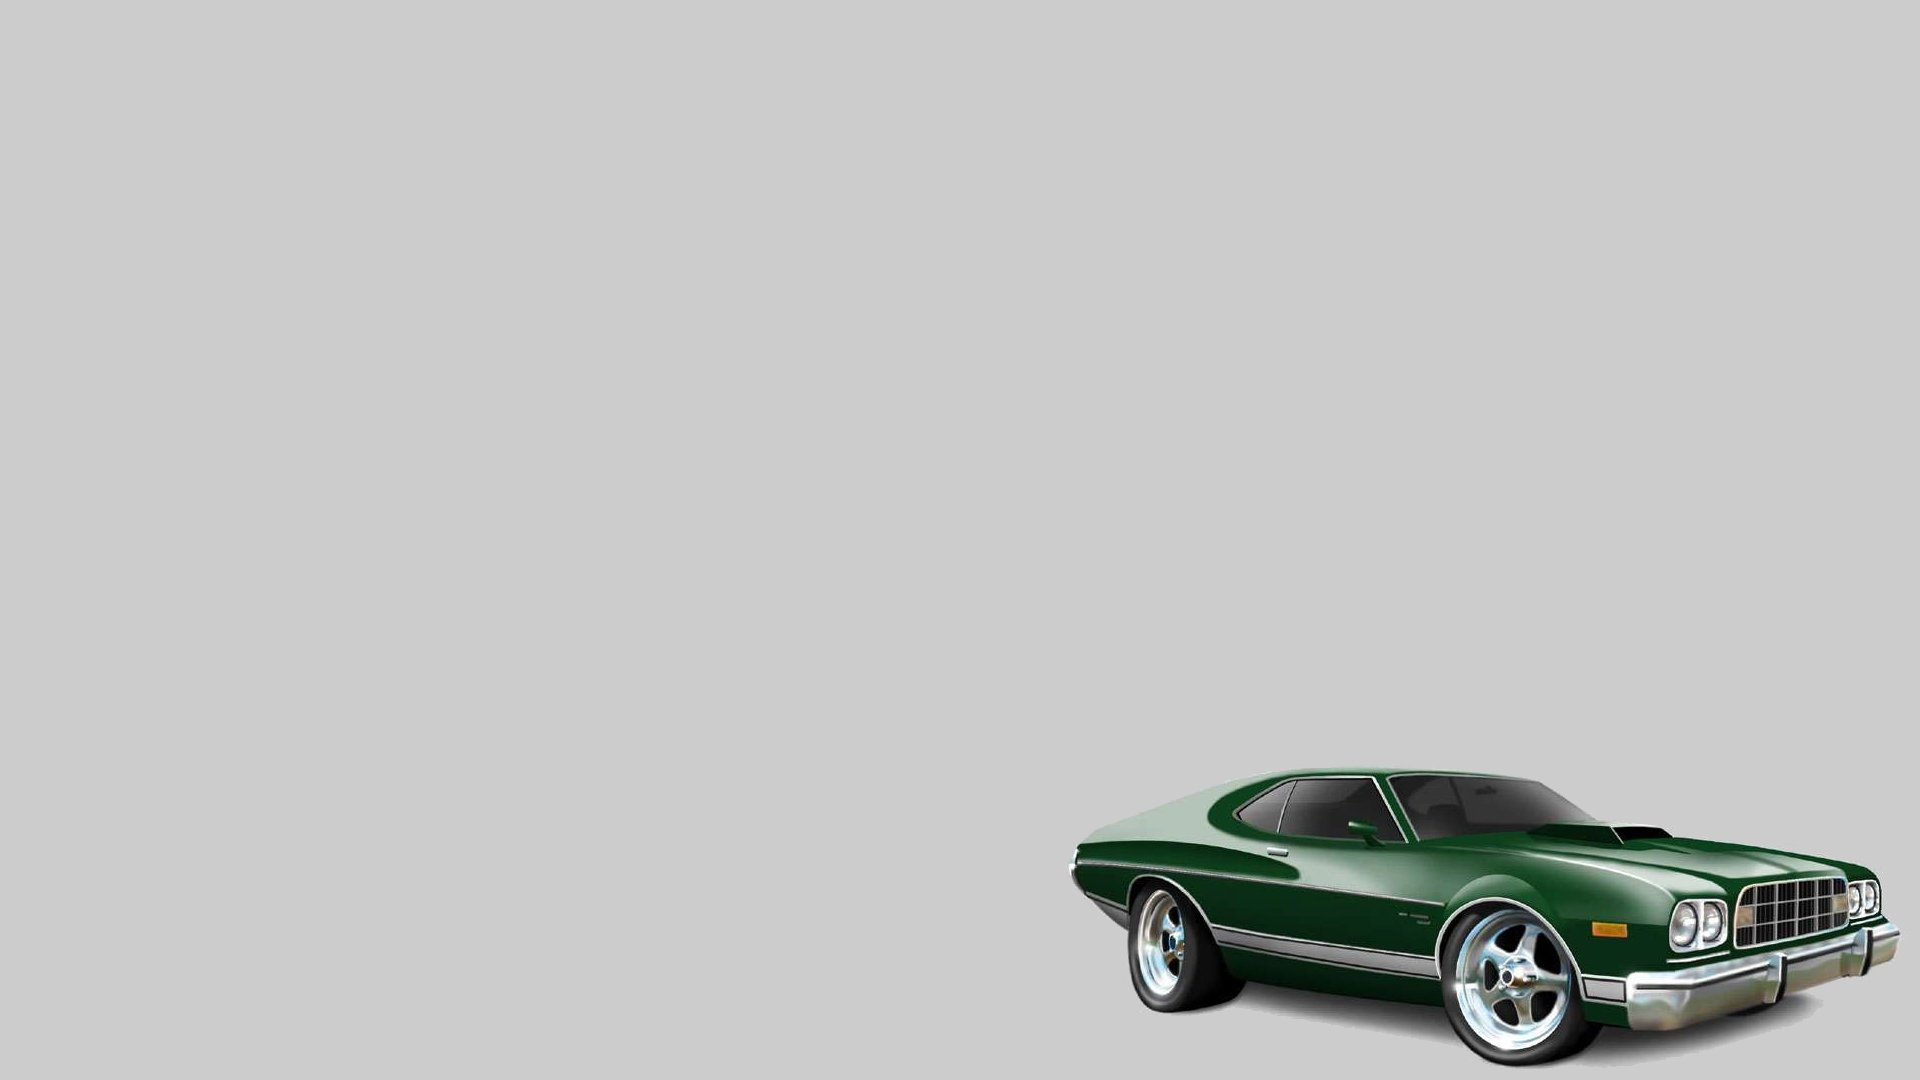 Best Ford Gran Torino Wallpaper Id91123 For High Resolution